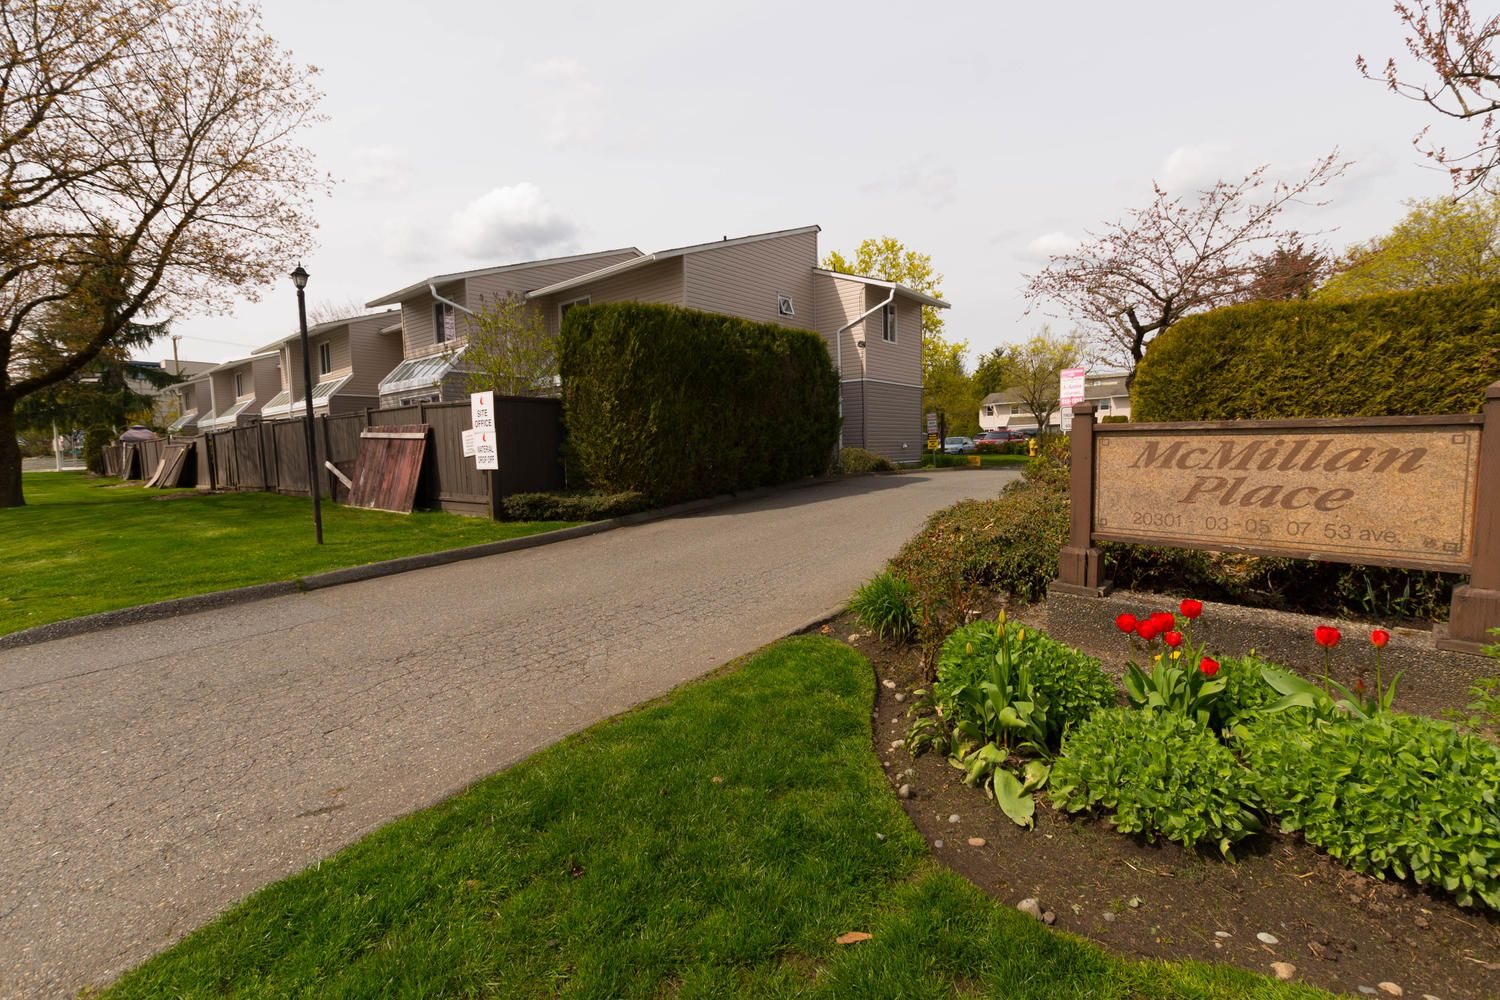 """Main Photo: 1 20301 53 Avenue in Langley: Langley City Townhouse for sale in """"McMillian Place"""" : MLS®# R2258887"""